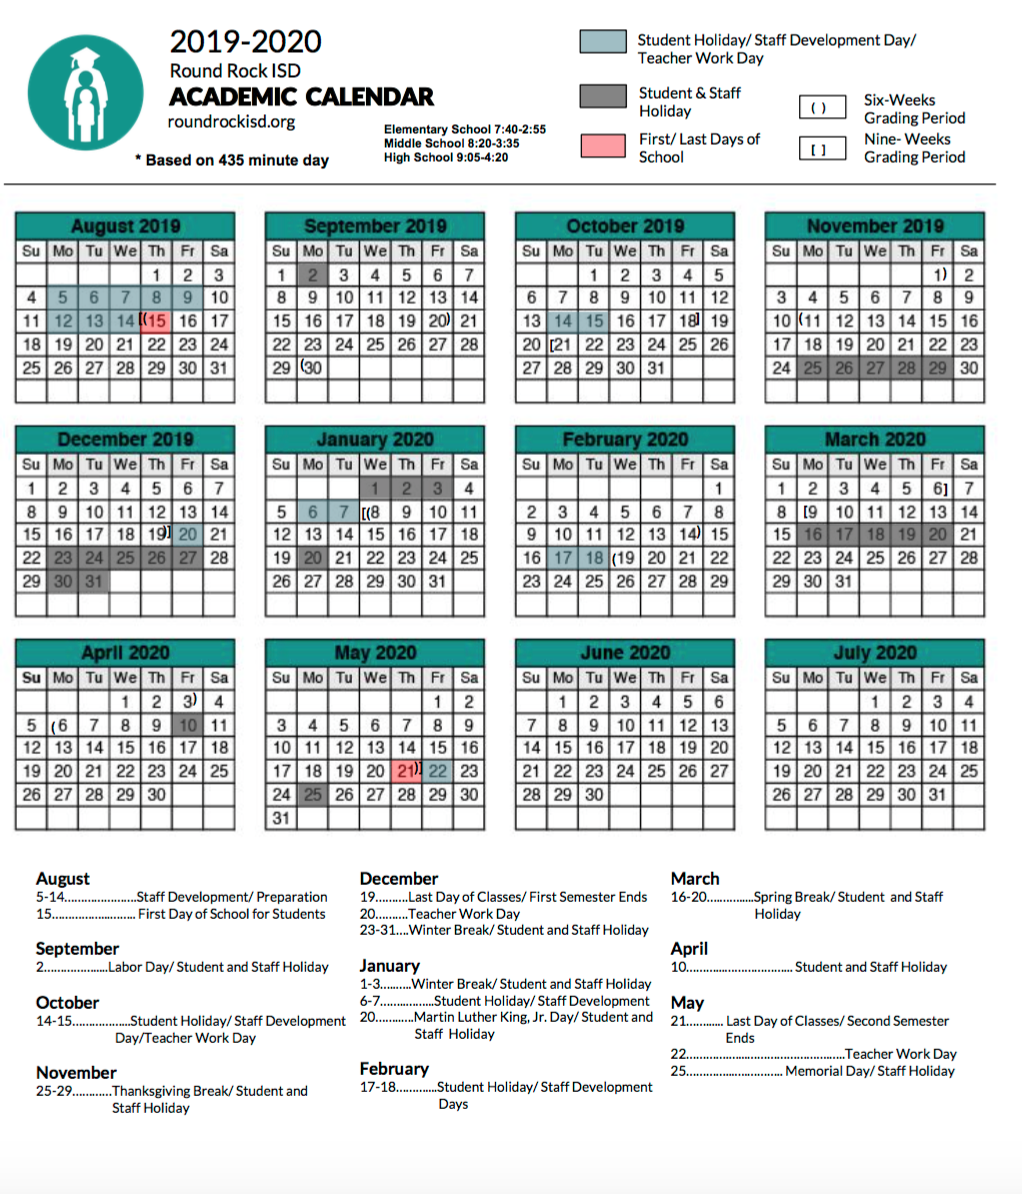 What You Need to Know About the RRISD Academic Calendars ...